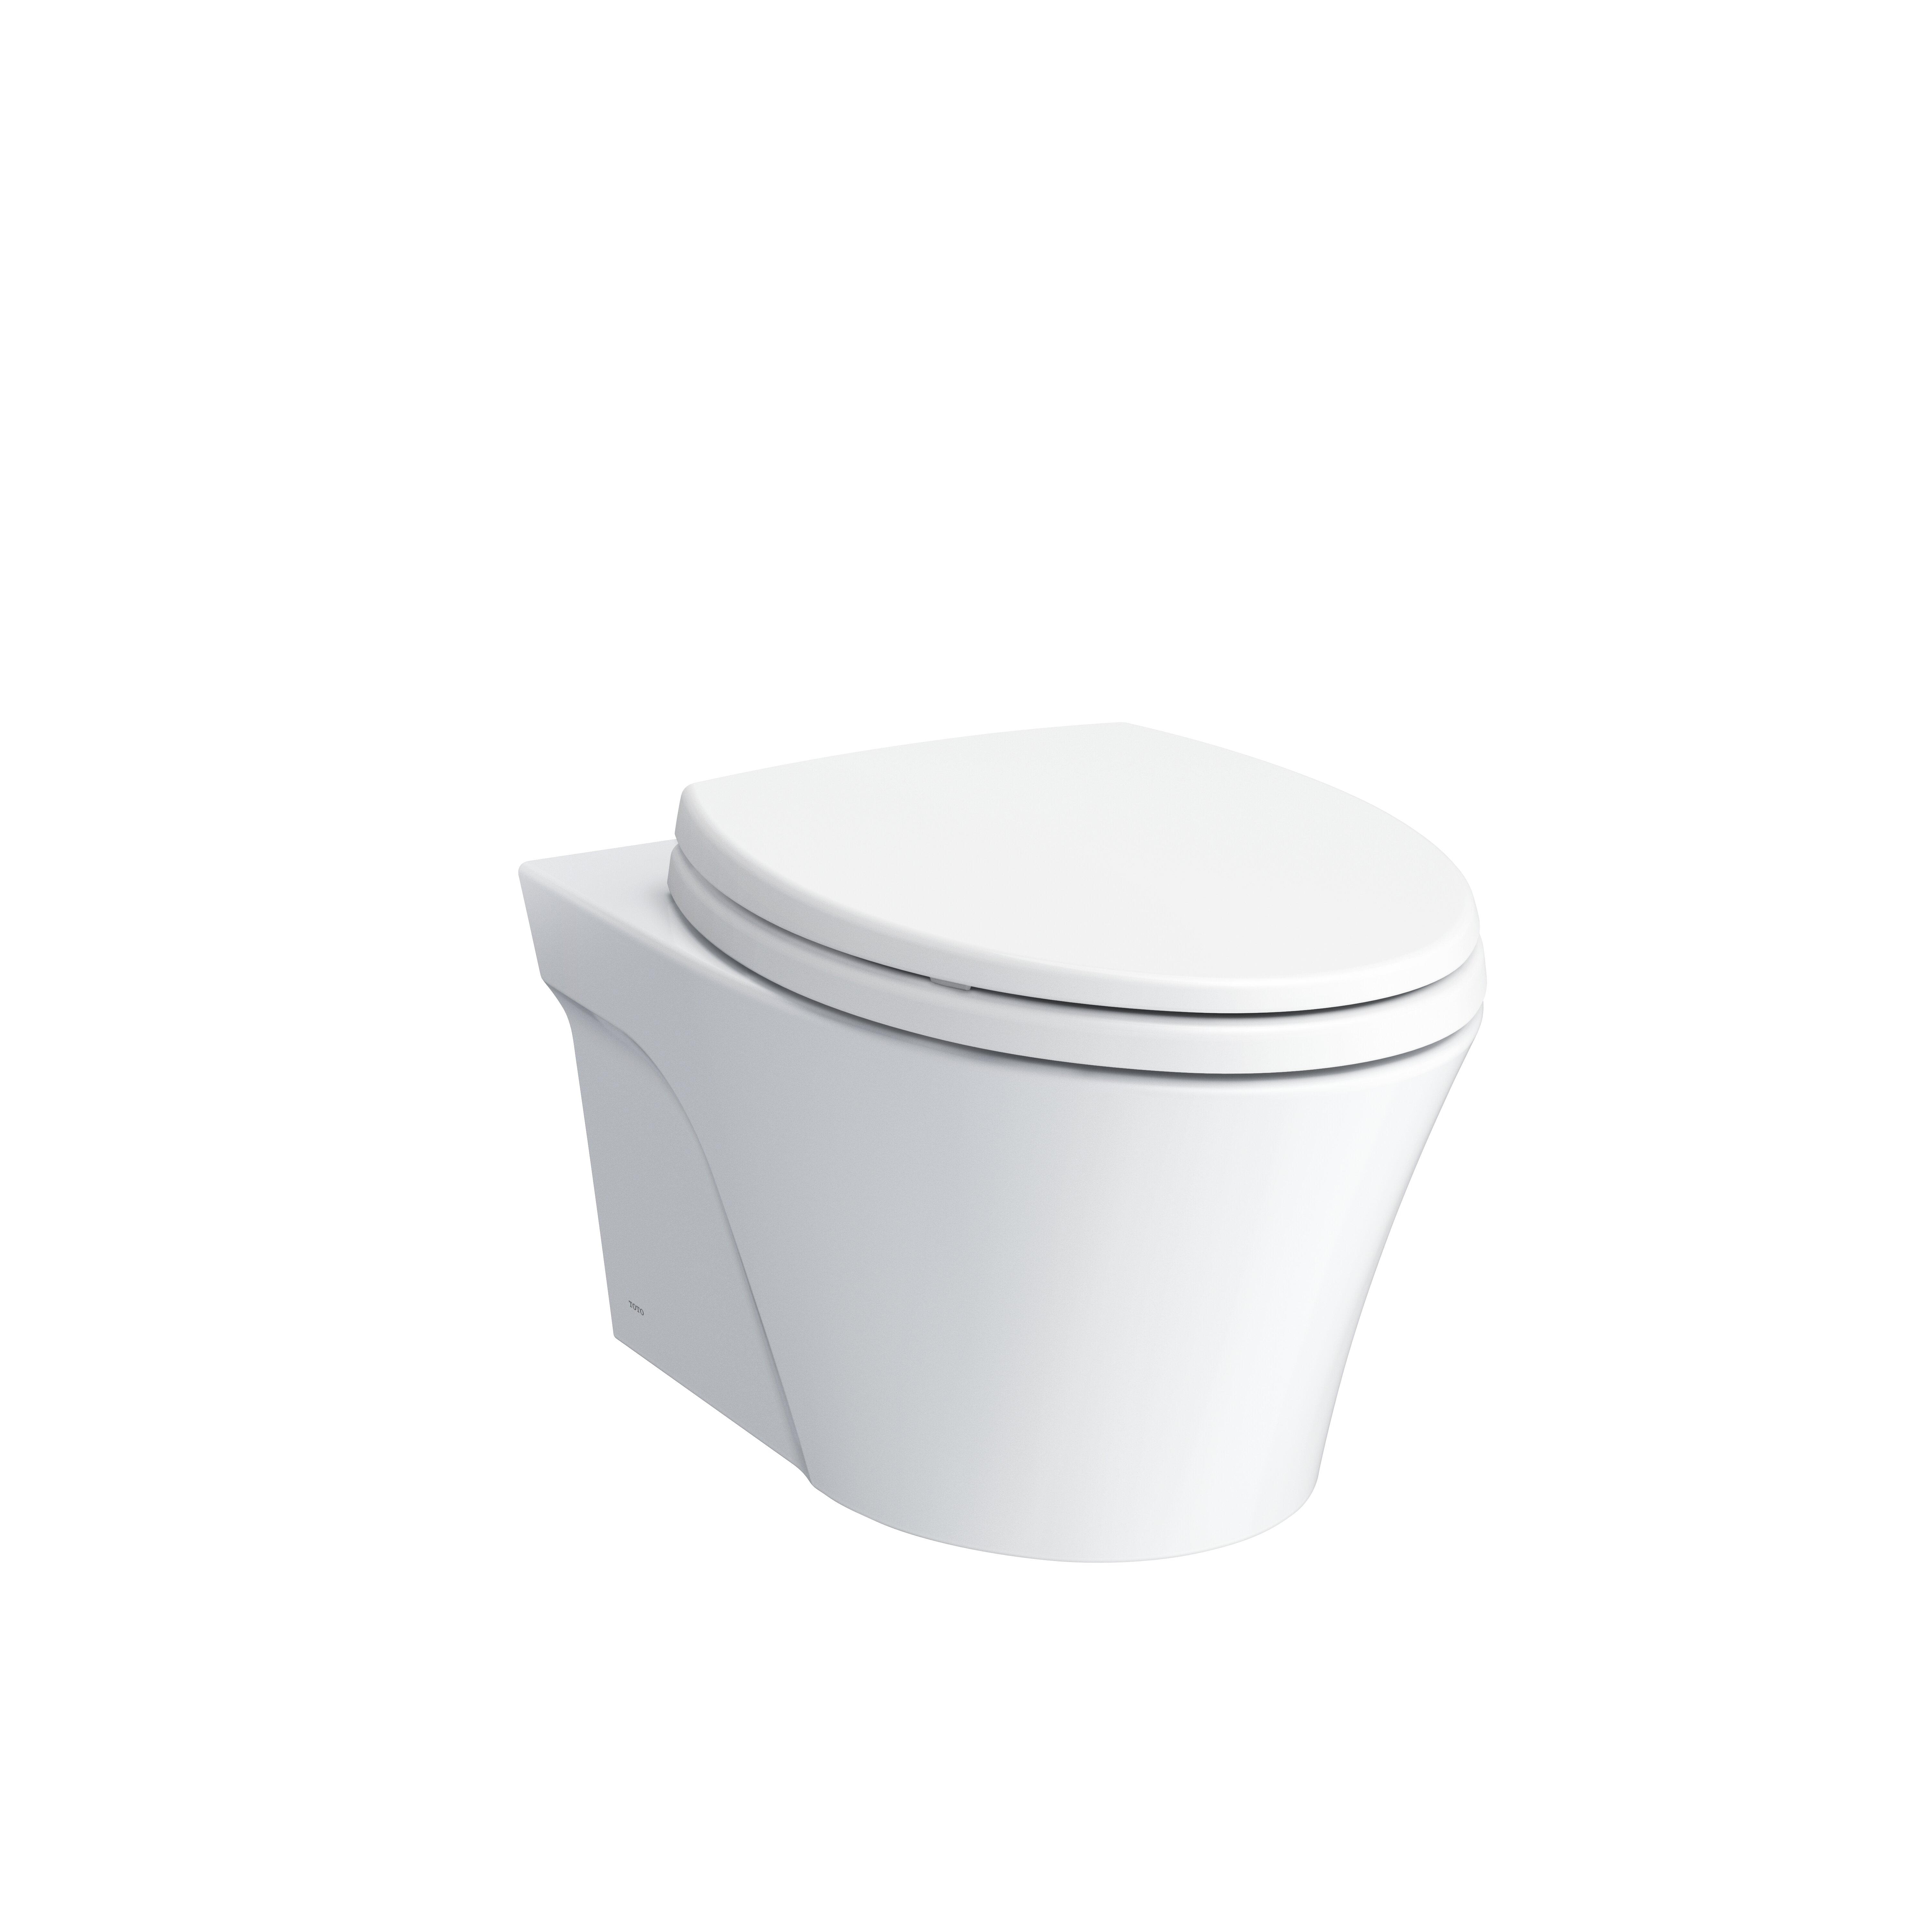 Outstanding Toto Ap Washlet Ready Wall Hung Elongated Toilet Bowl With Skirted Design And Cefiontect Creativecarmelina Interior Chair Design Creativecarmelinacom